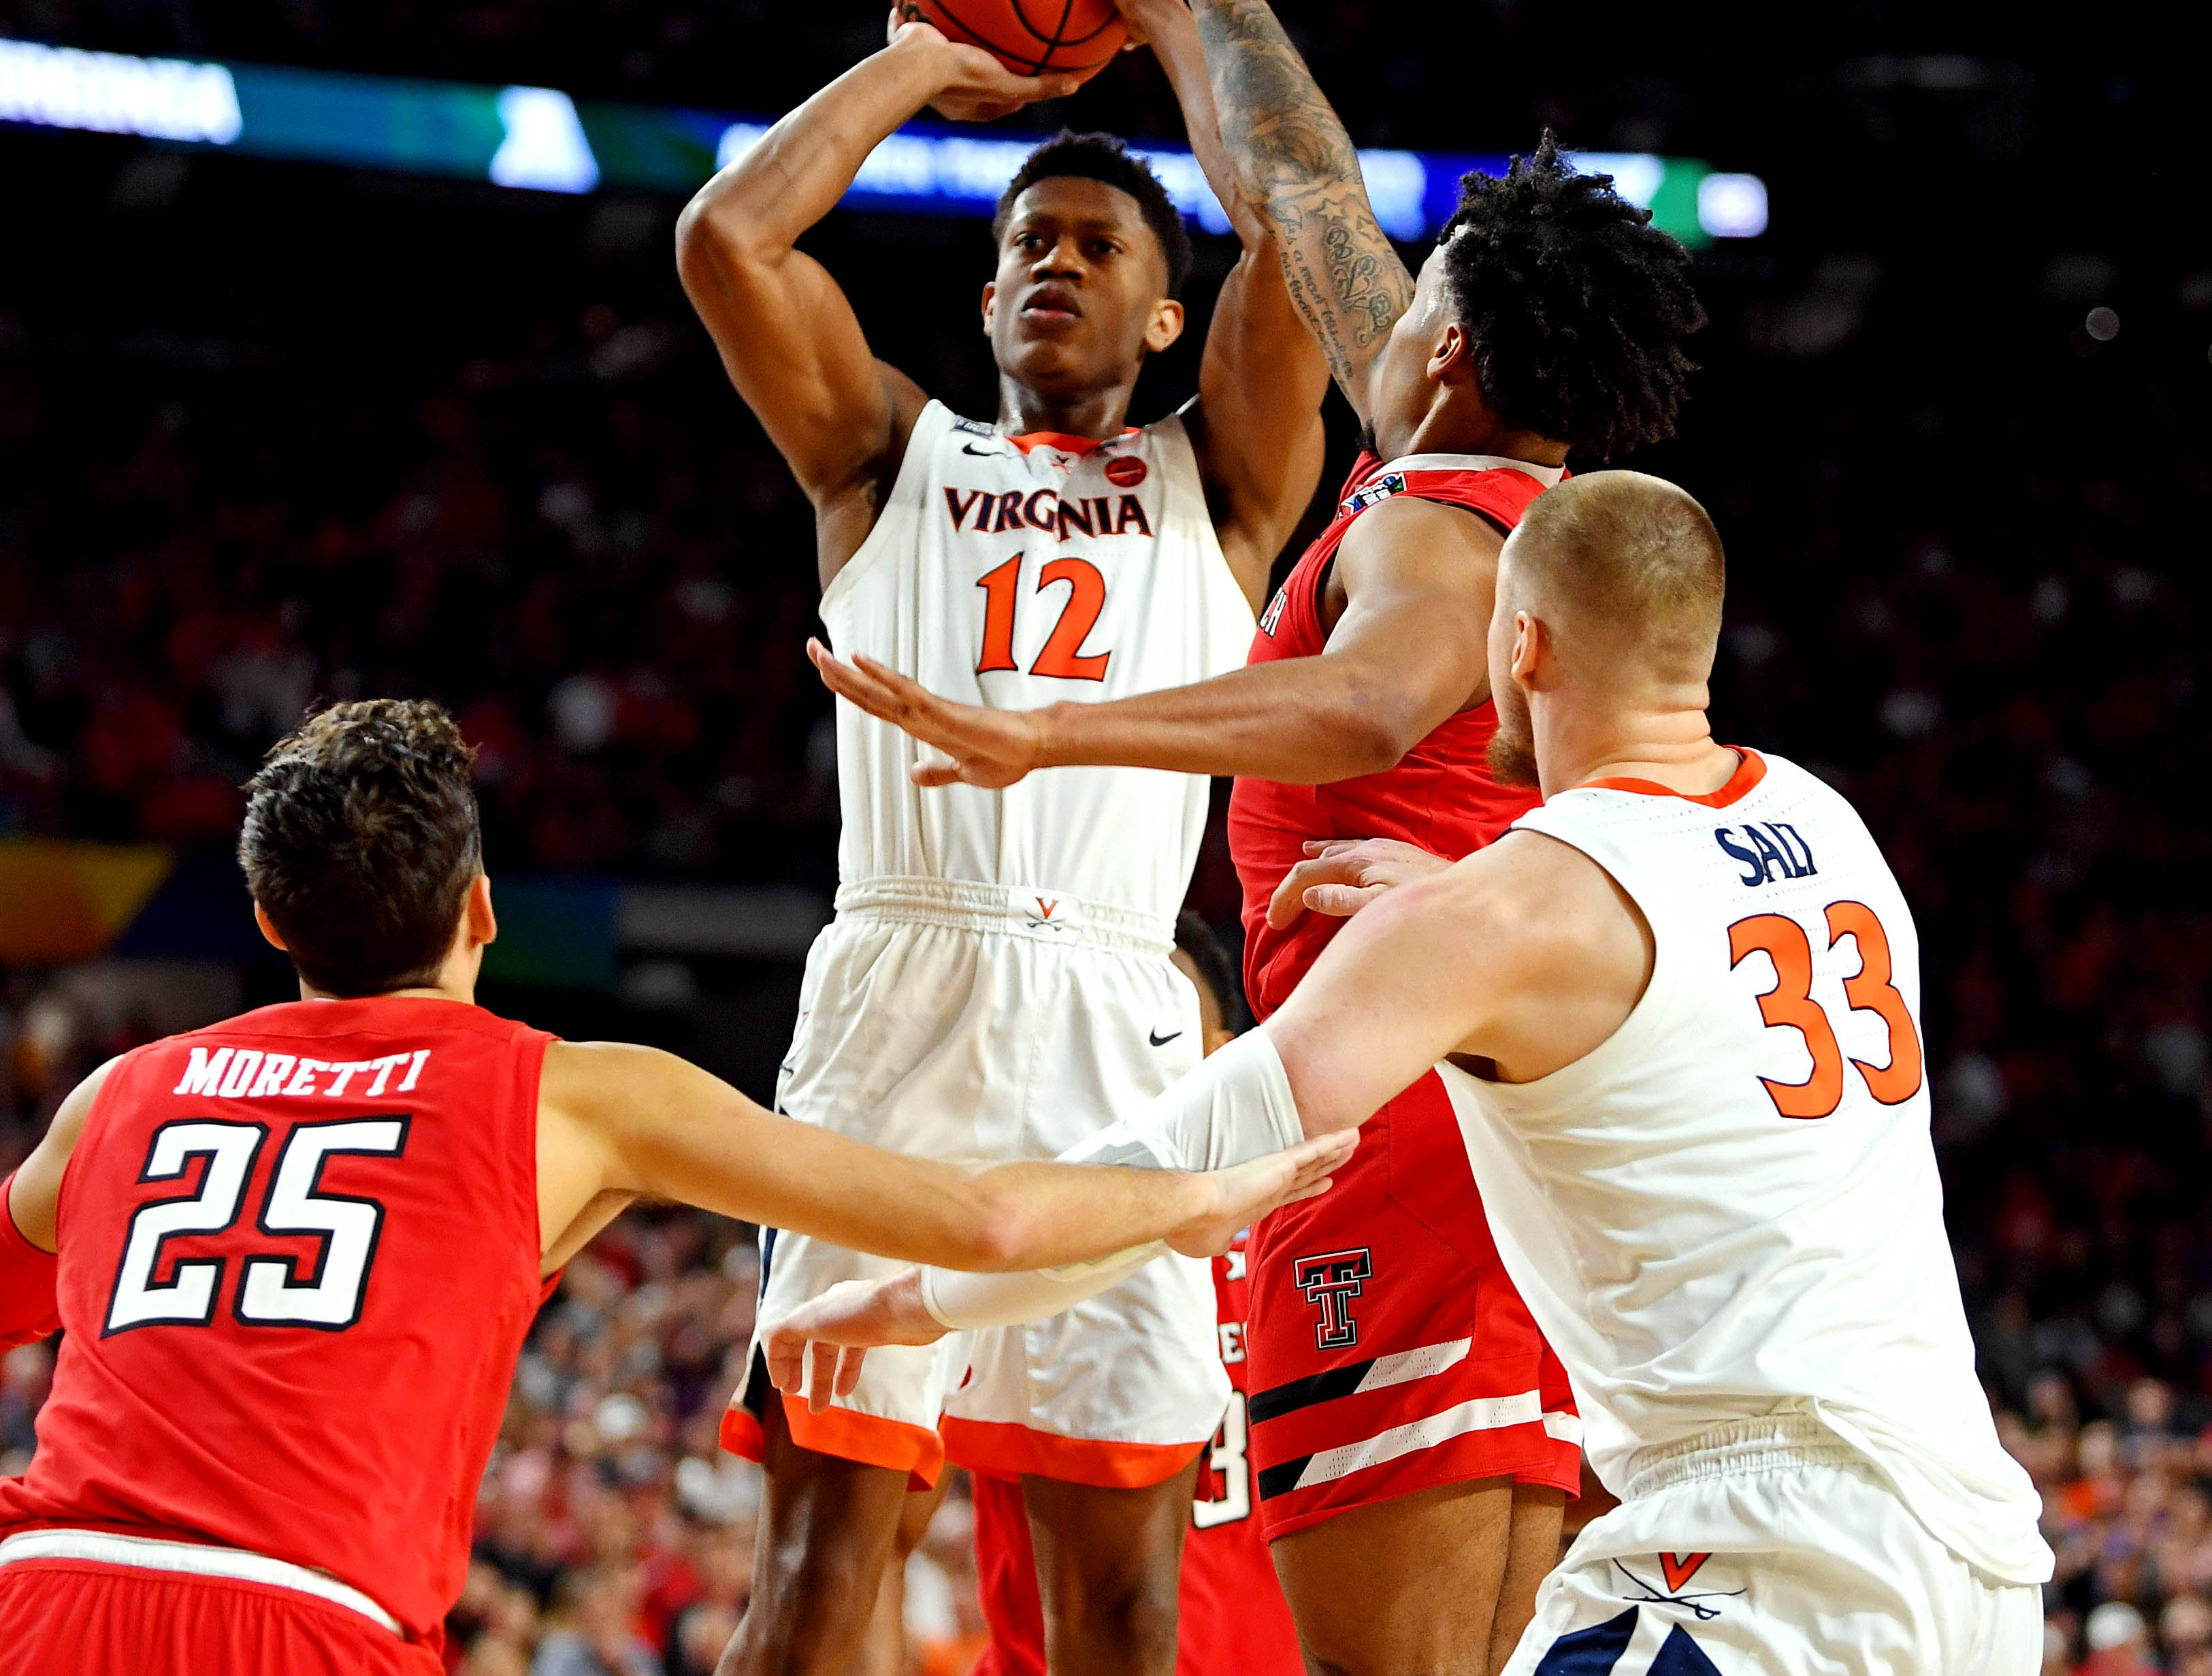 Apr 8, 2019; Minneapolis, MN, USA; Virginia Cavaliers guard De'Andre Hunter (12) shoots the ball against Texas Tech Red Raiders guard Kyler Edwards (0) during the first half in the championship game of the 2019 men's Final Four at US Bank Stadium. Mandatory Credit: Bob Donnan-USA TODAY Sports